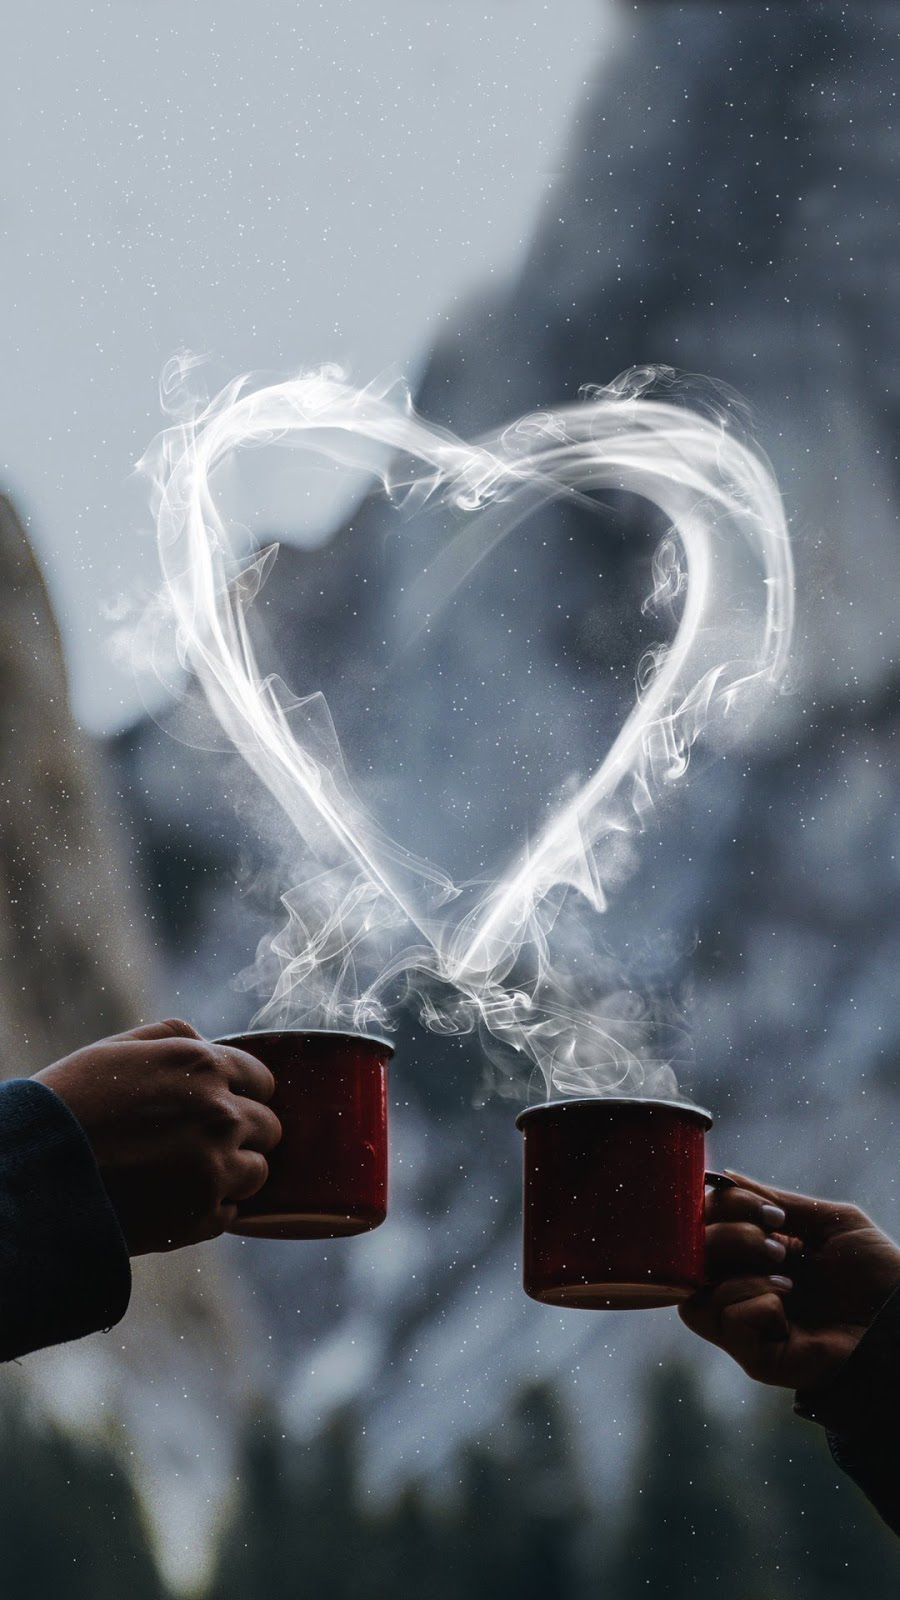 Snow, Coffee, Love Wallpapers Free Download